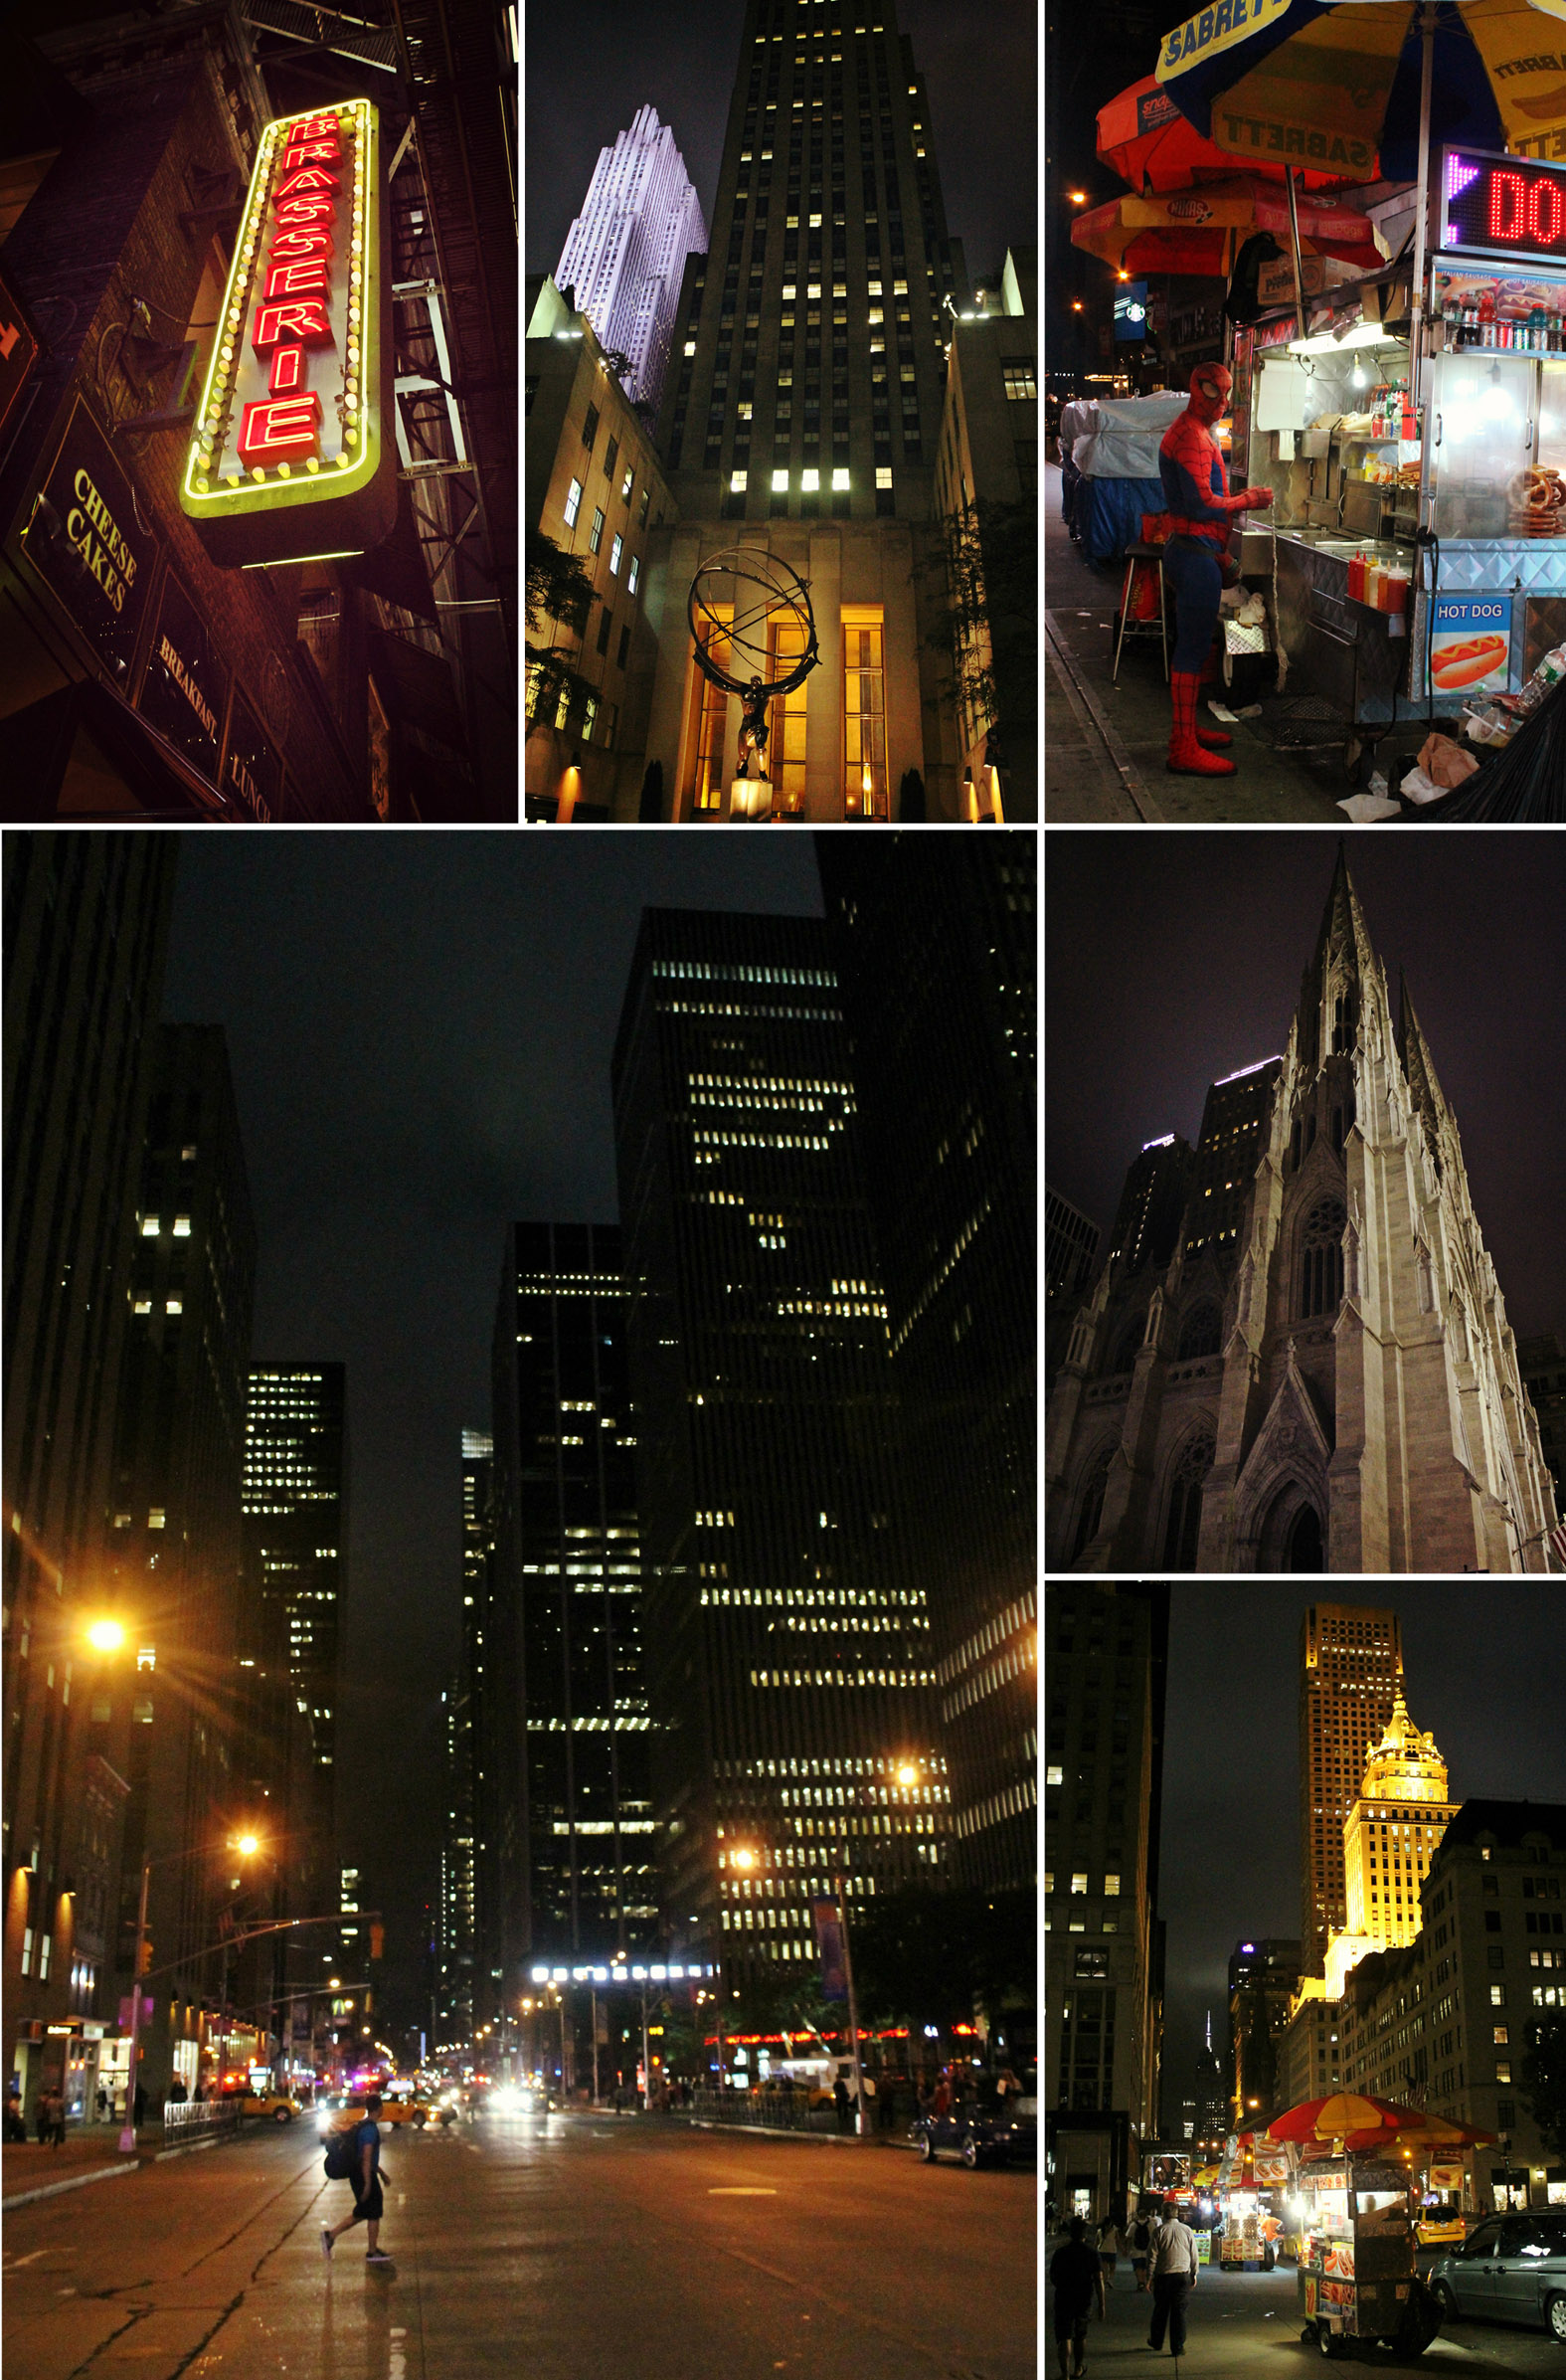 usa, New York, nyc, night, Rockefeller, voyage, road trip